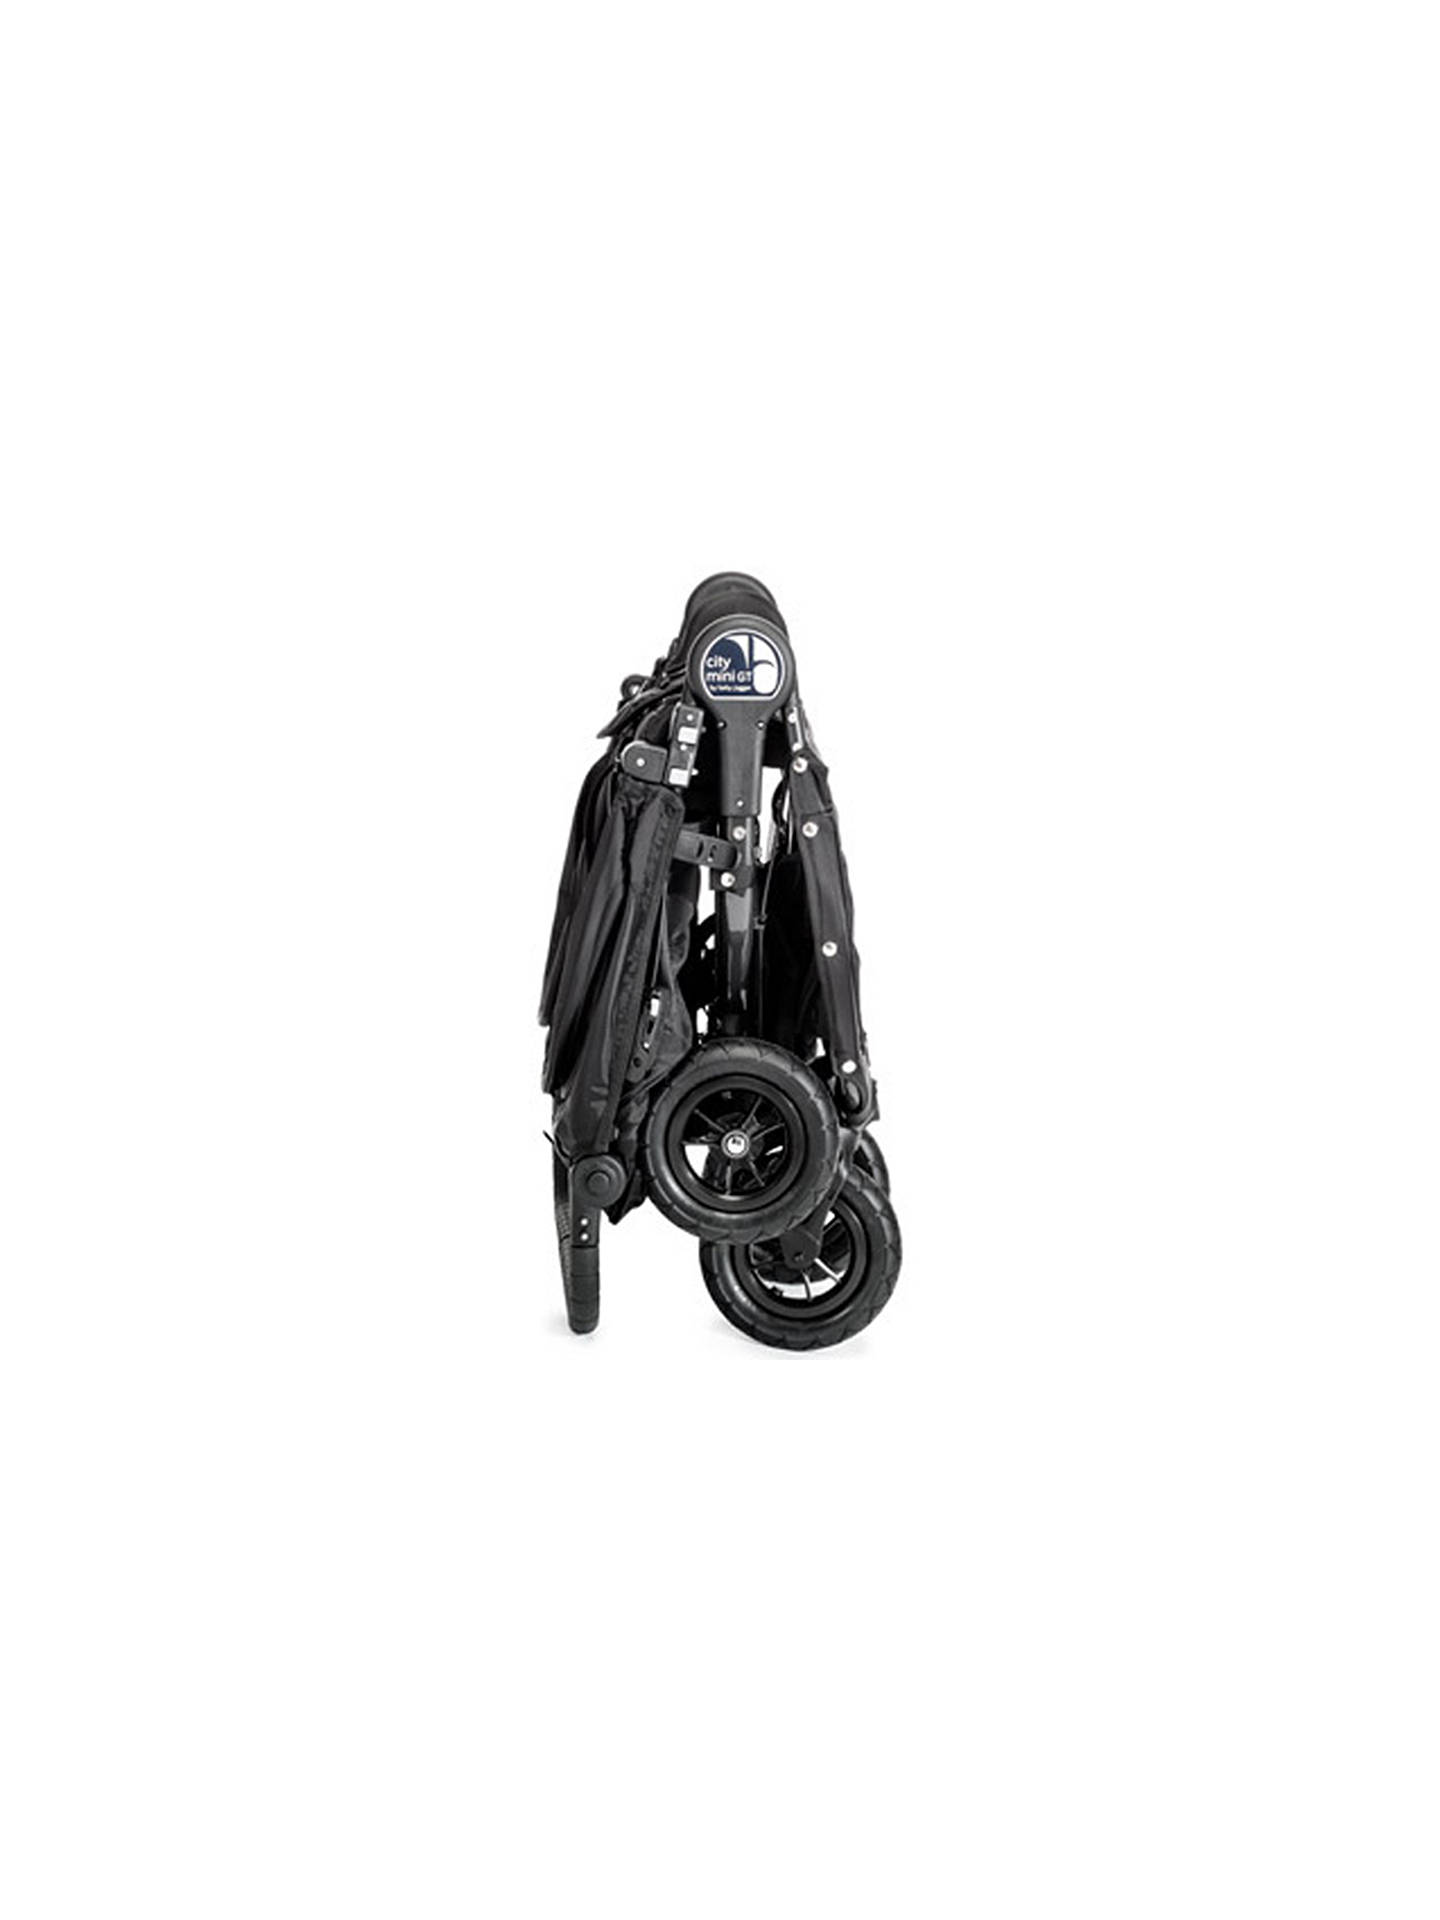 BuyBaby Jogger City Mini Twin Pushchair, Black/Grey Online at johnlewis.com